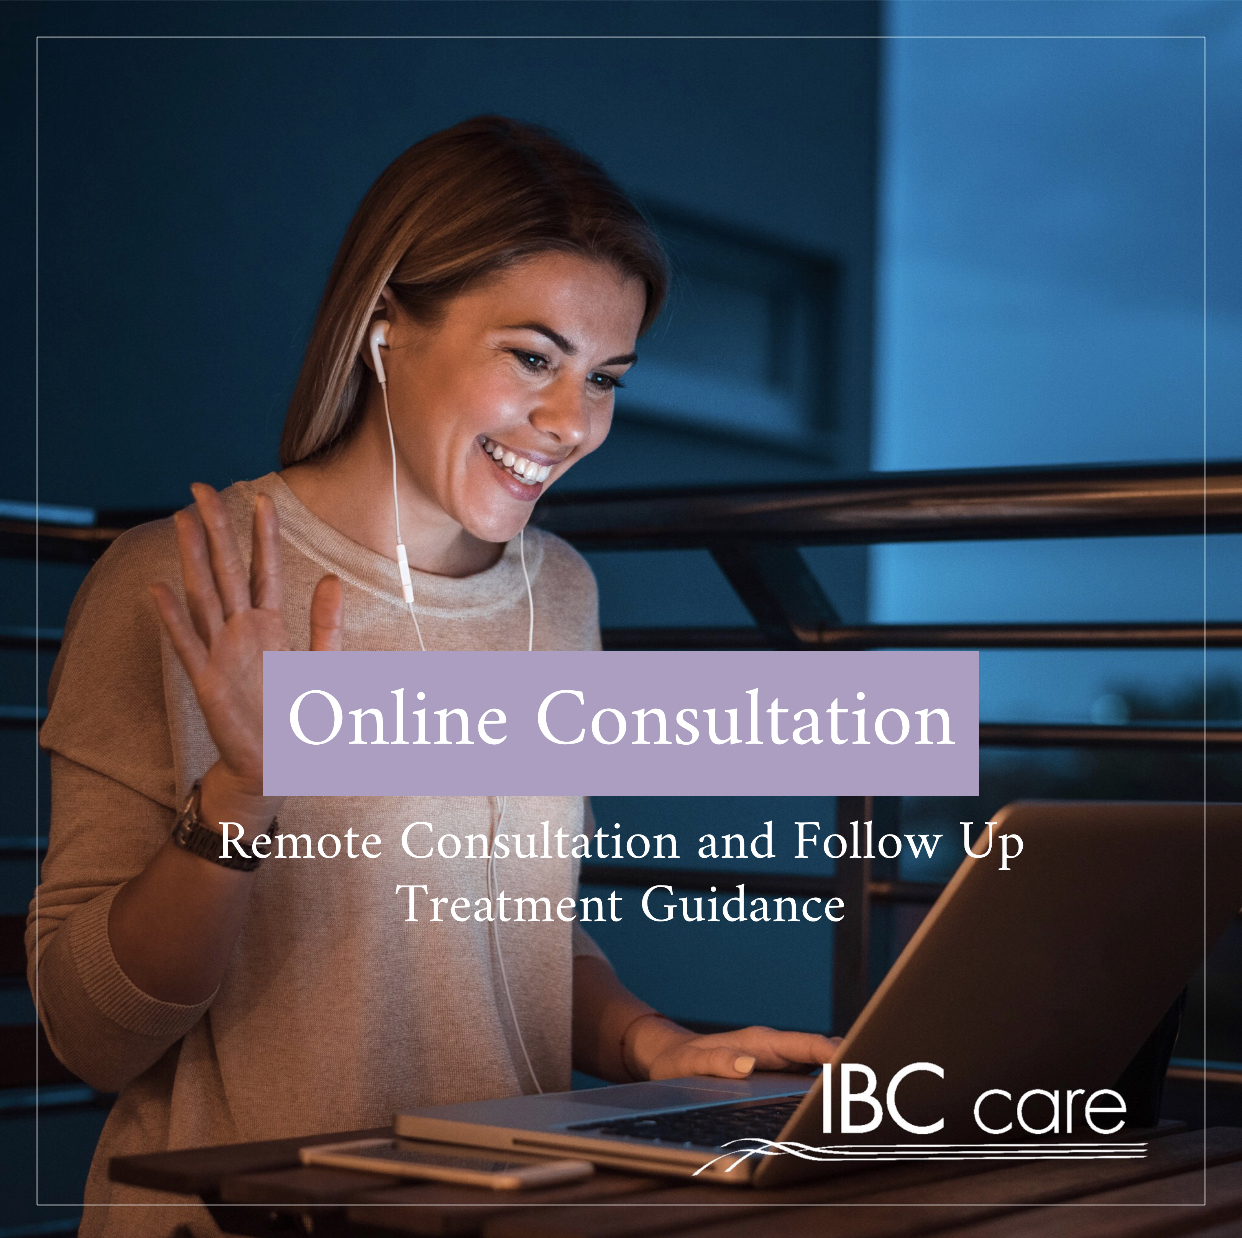 IBC Care Remote Consultations and Follow Up Treatment Guidance